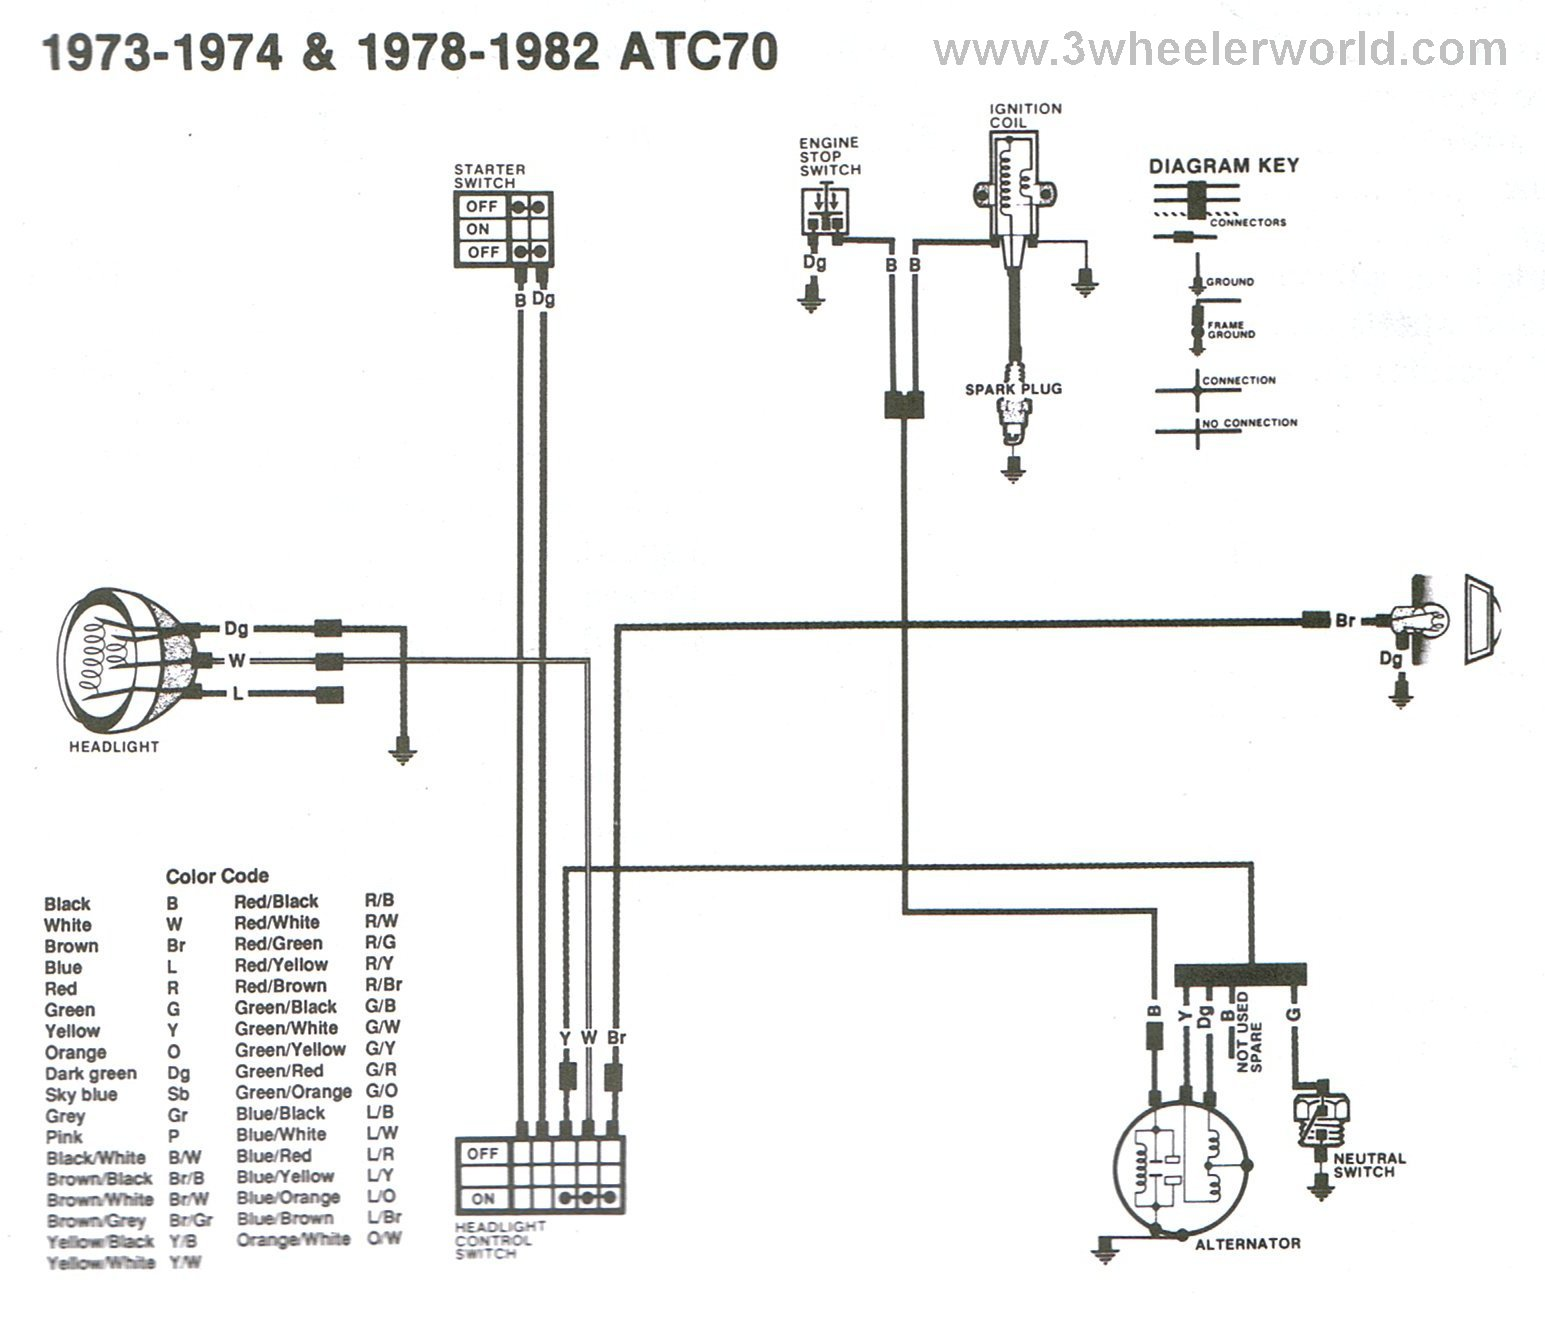 ATC70x73Thru82 3 wheeler world tech help honda wiring diagrams wiring diagram for 1984 honda atc 70 at honlapkeszites.co